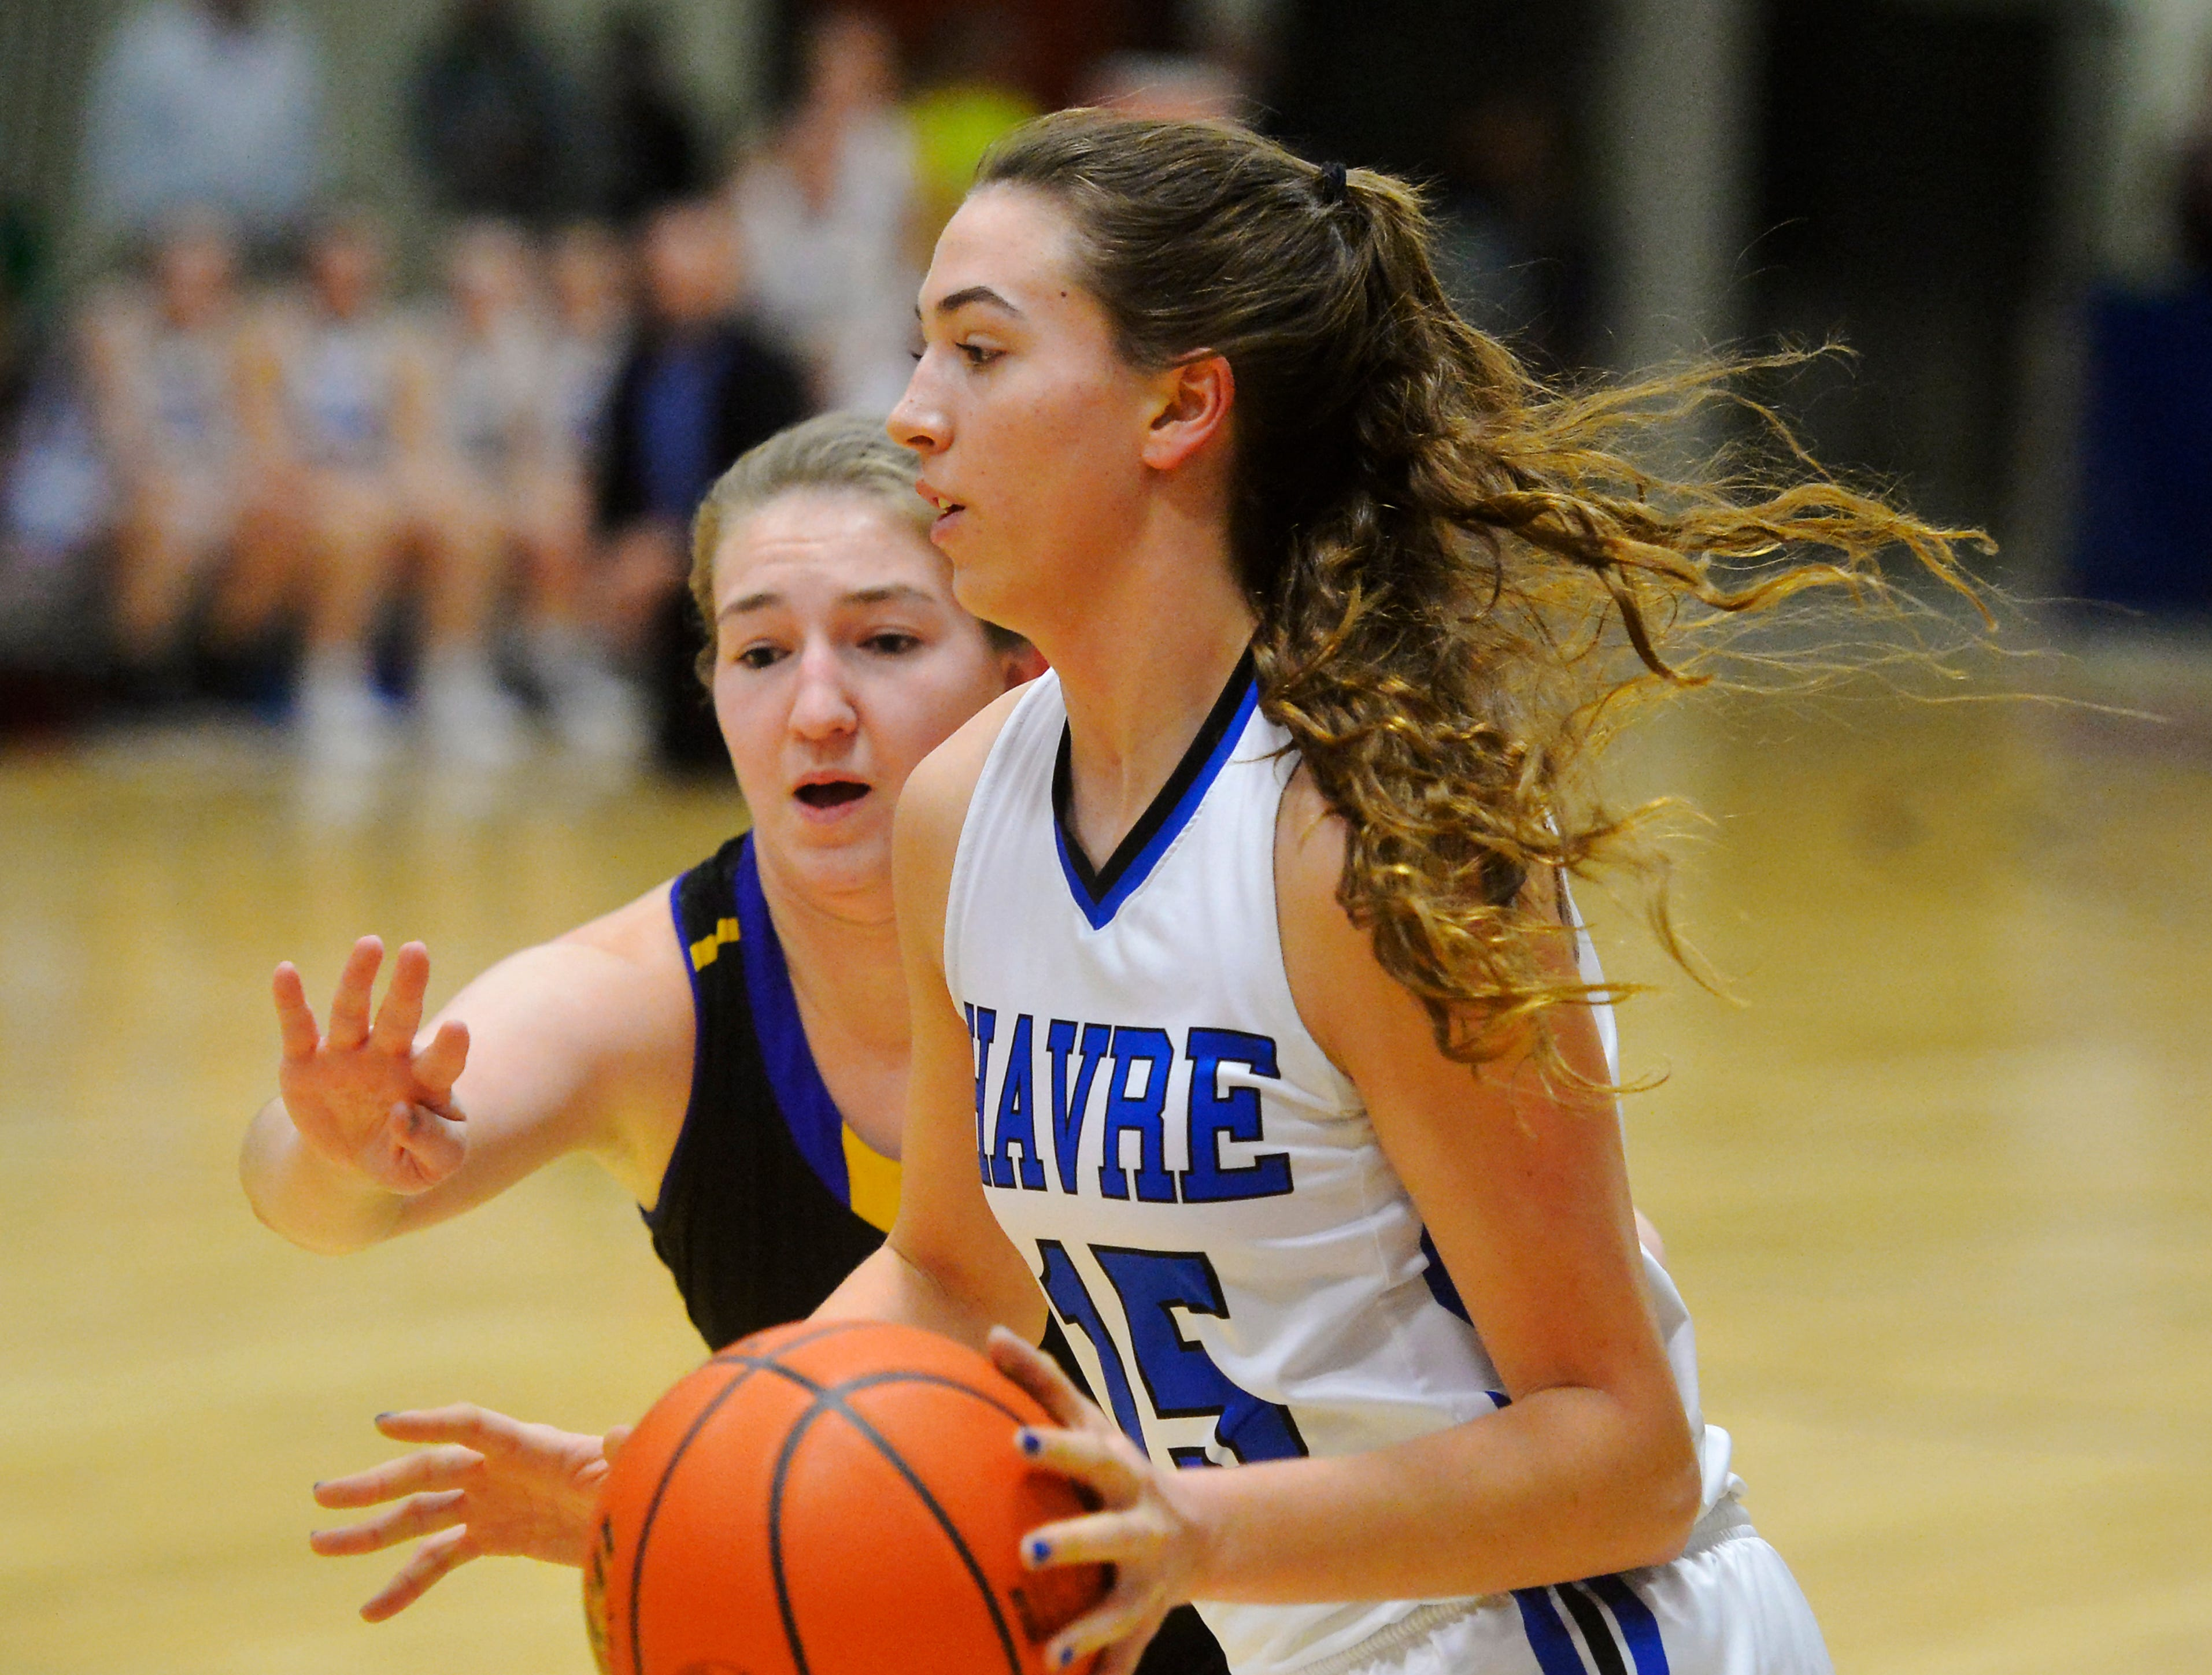 Havre's Loy Waid handles the ball during Friday's game against Laure in the semifinal round of the State Class A Basketball Tournament in the Four Seasons Arena, Friday.